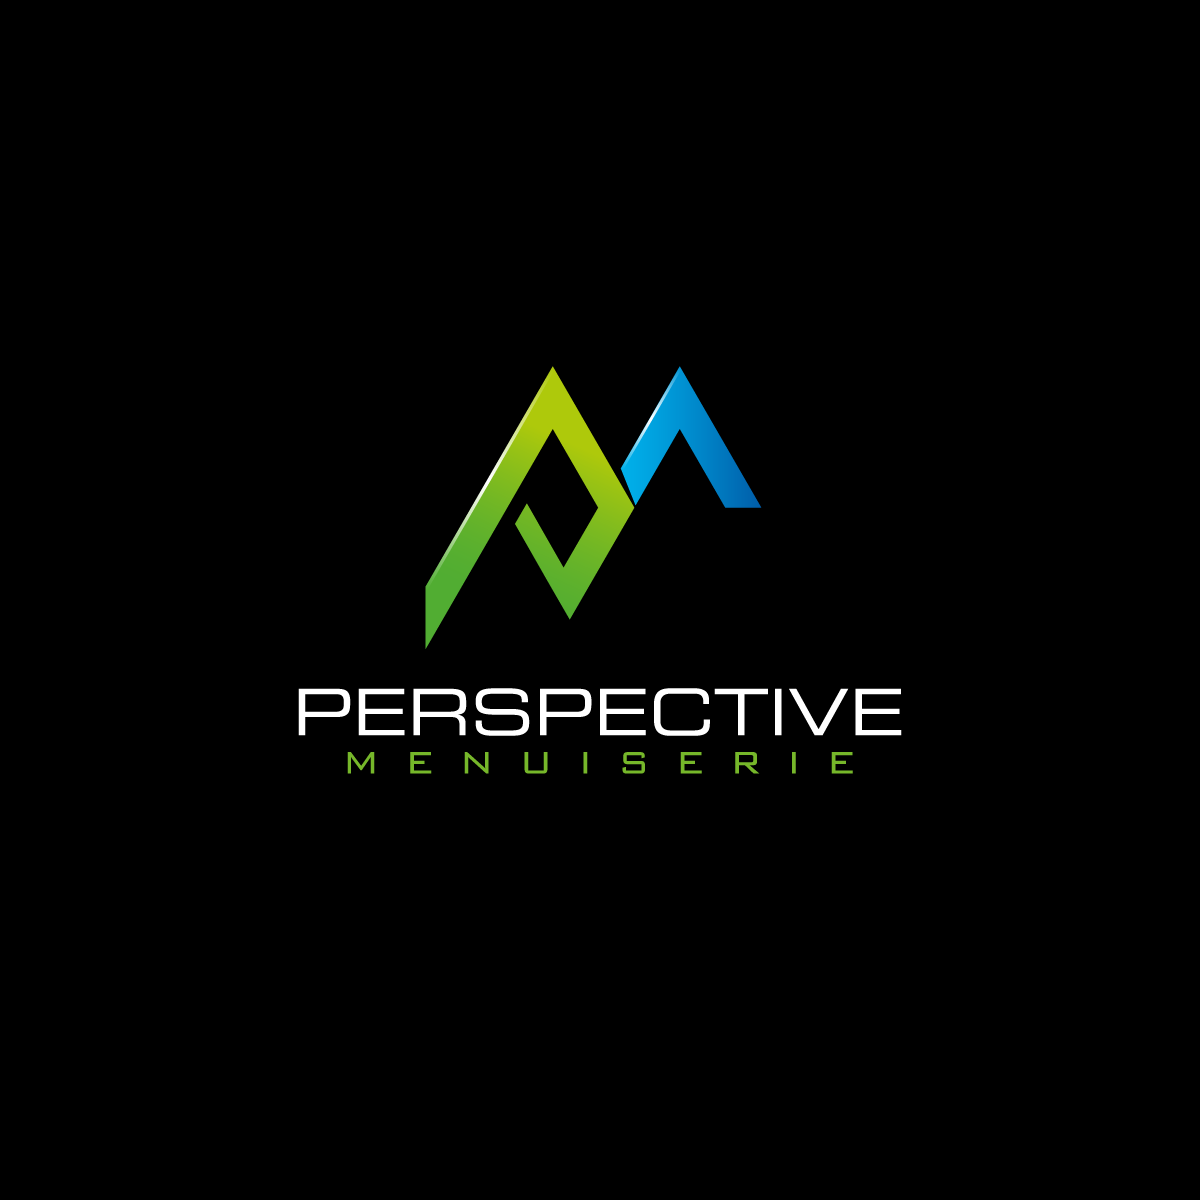 perspective-menuiserie-logo